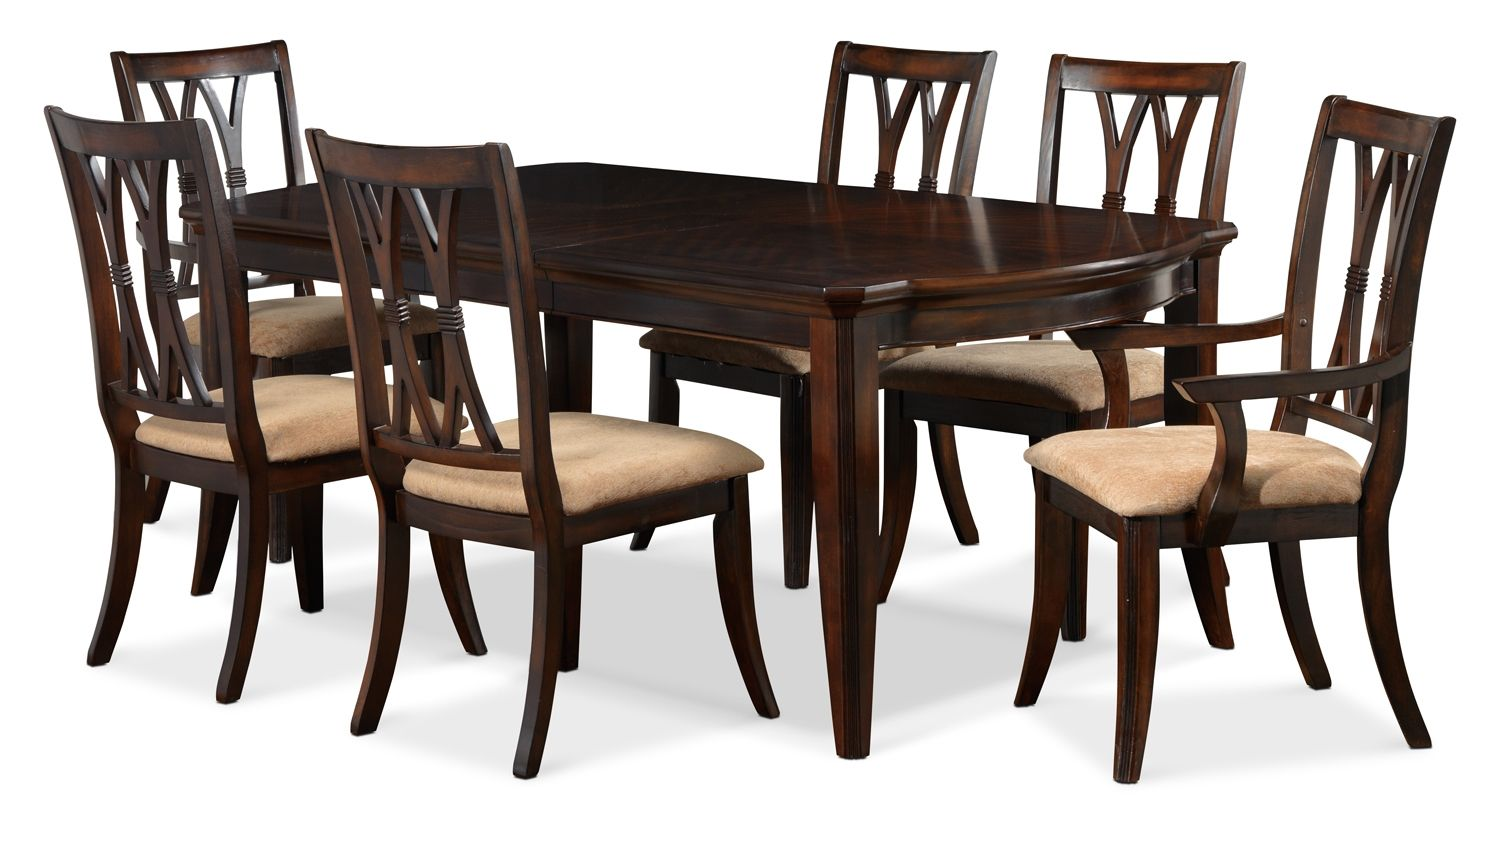 king furniture dining chairs brown recliner chair george room 7 pc set leon 39s